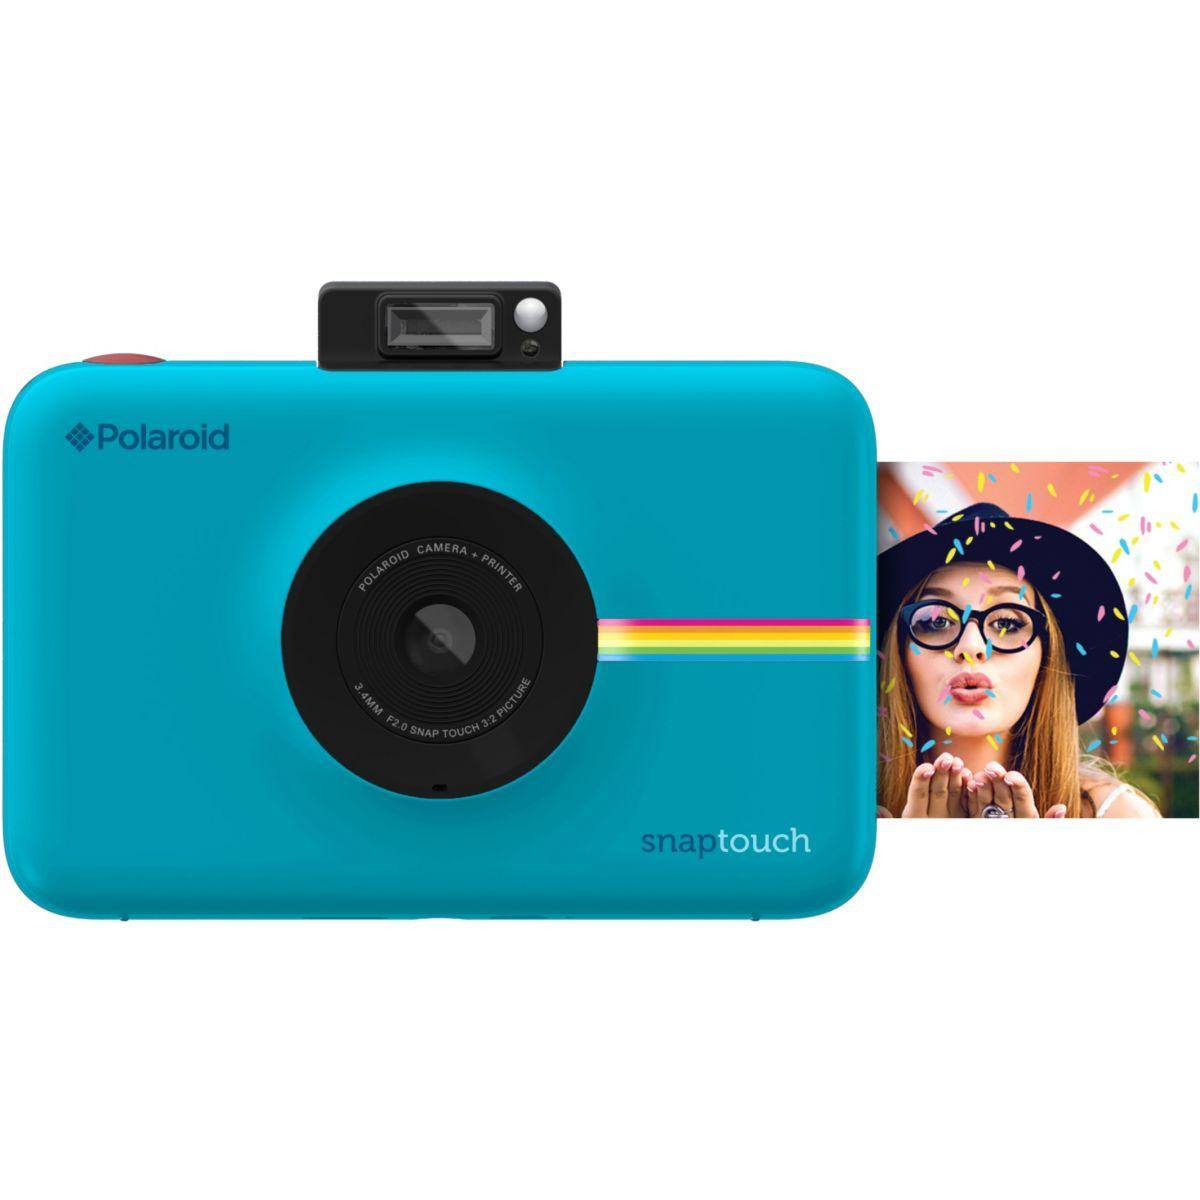 Appareil photo num?rique polaroid snap touch bleu